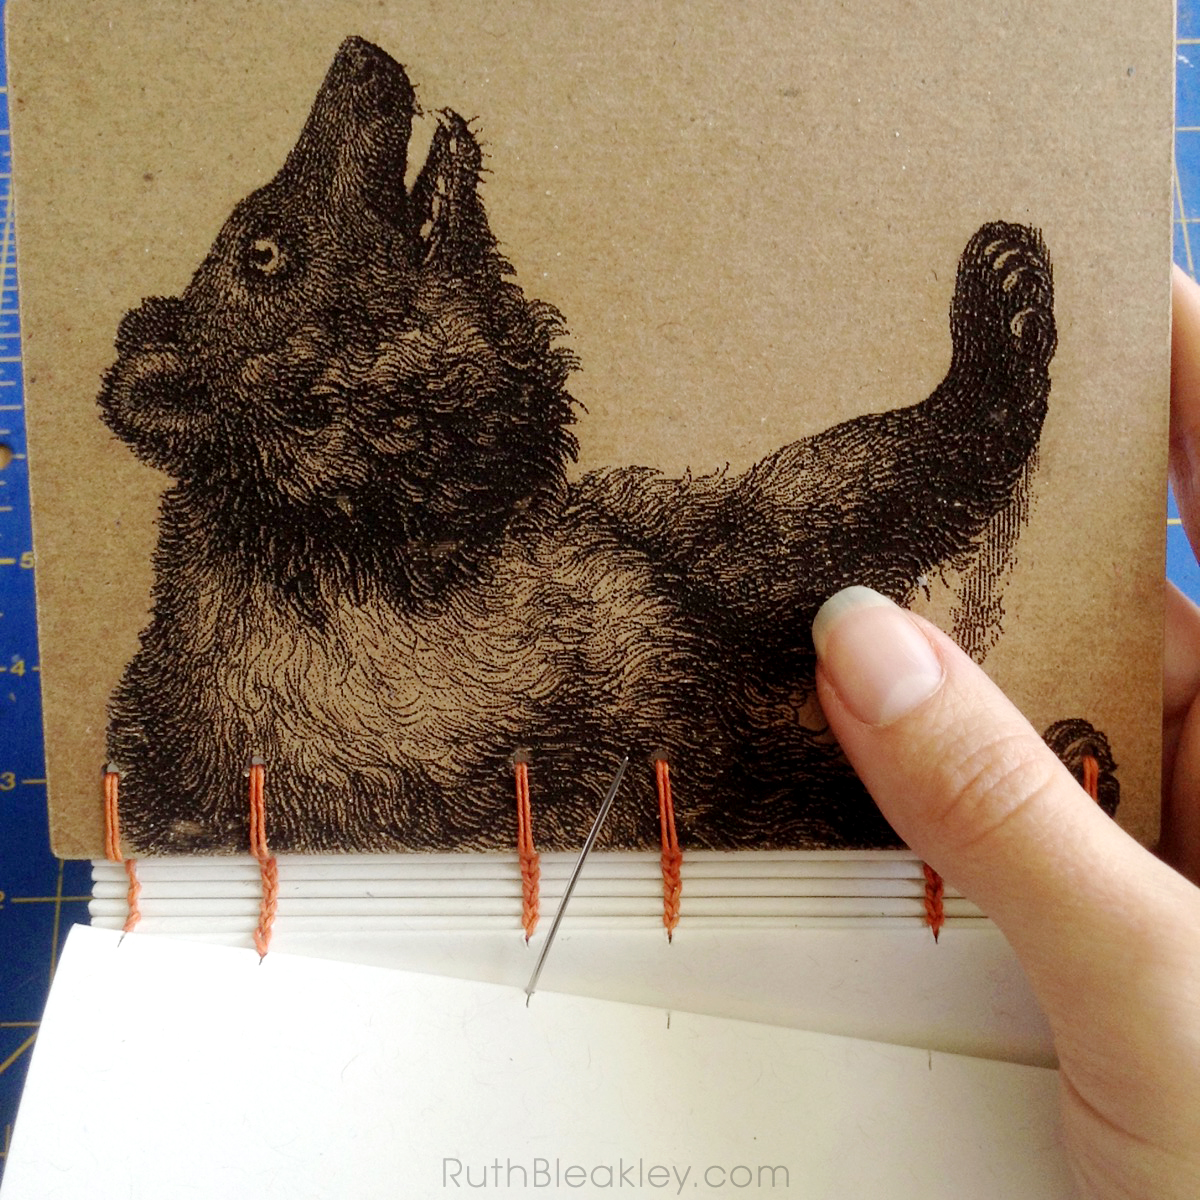 Bear Handmade Journal by book artist Ruth Bleakley - bookbinding